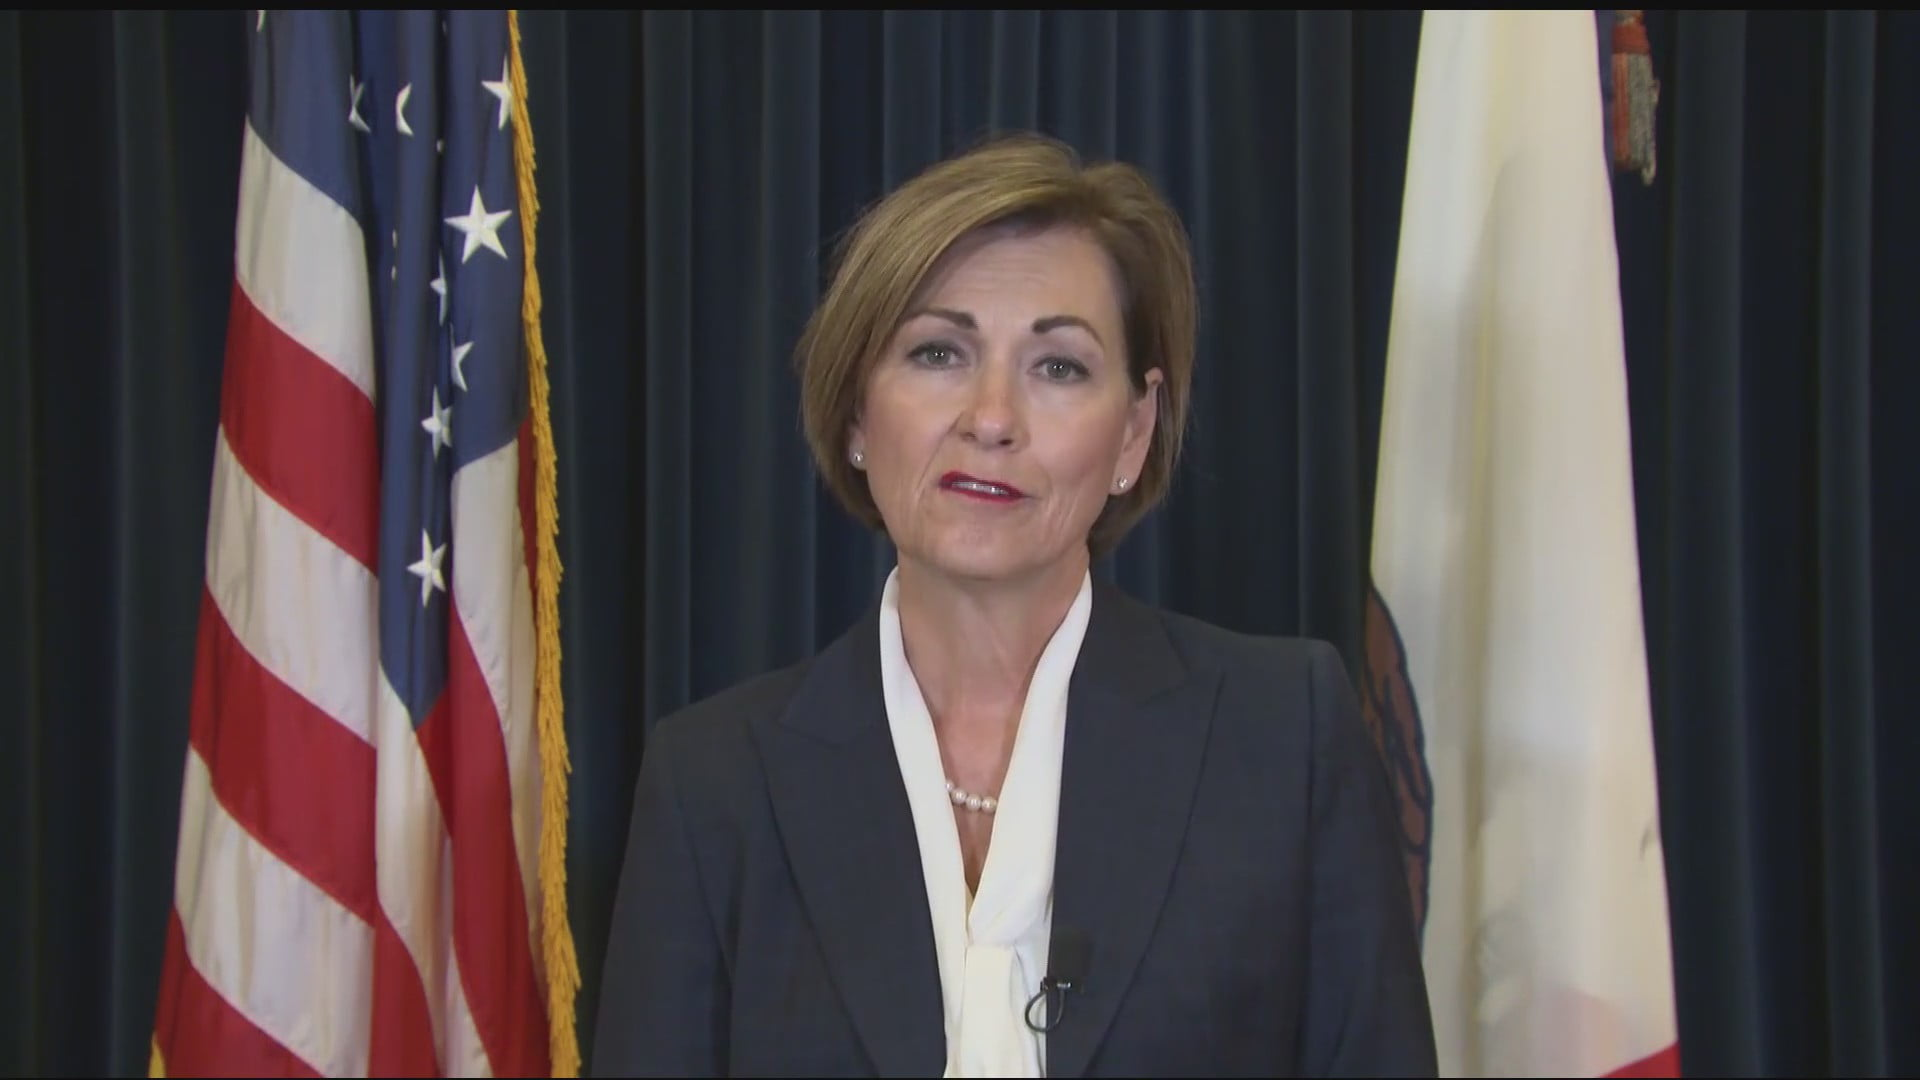 Governor Kim Reynolds Urges Patience in Wait for Racial Justice 1